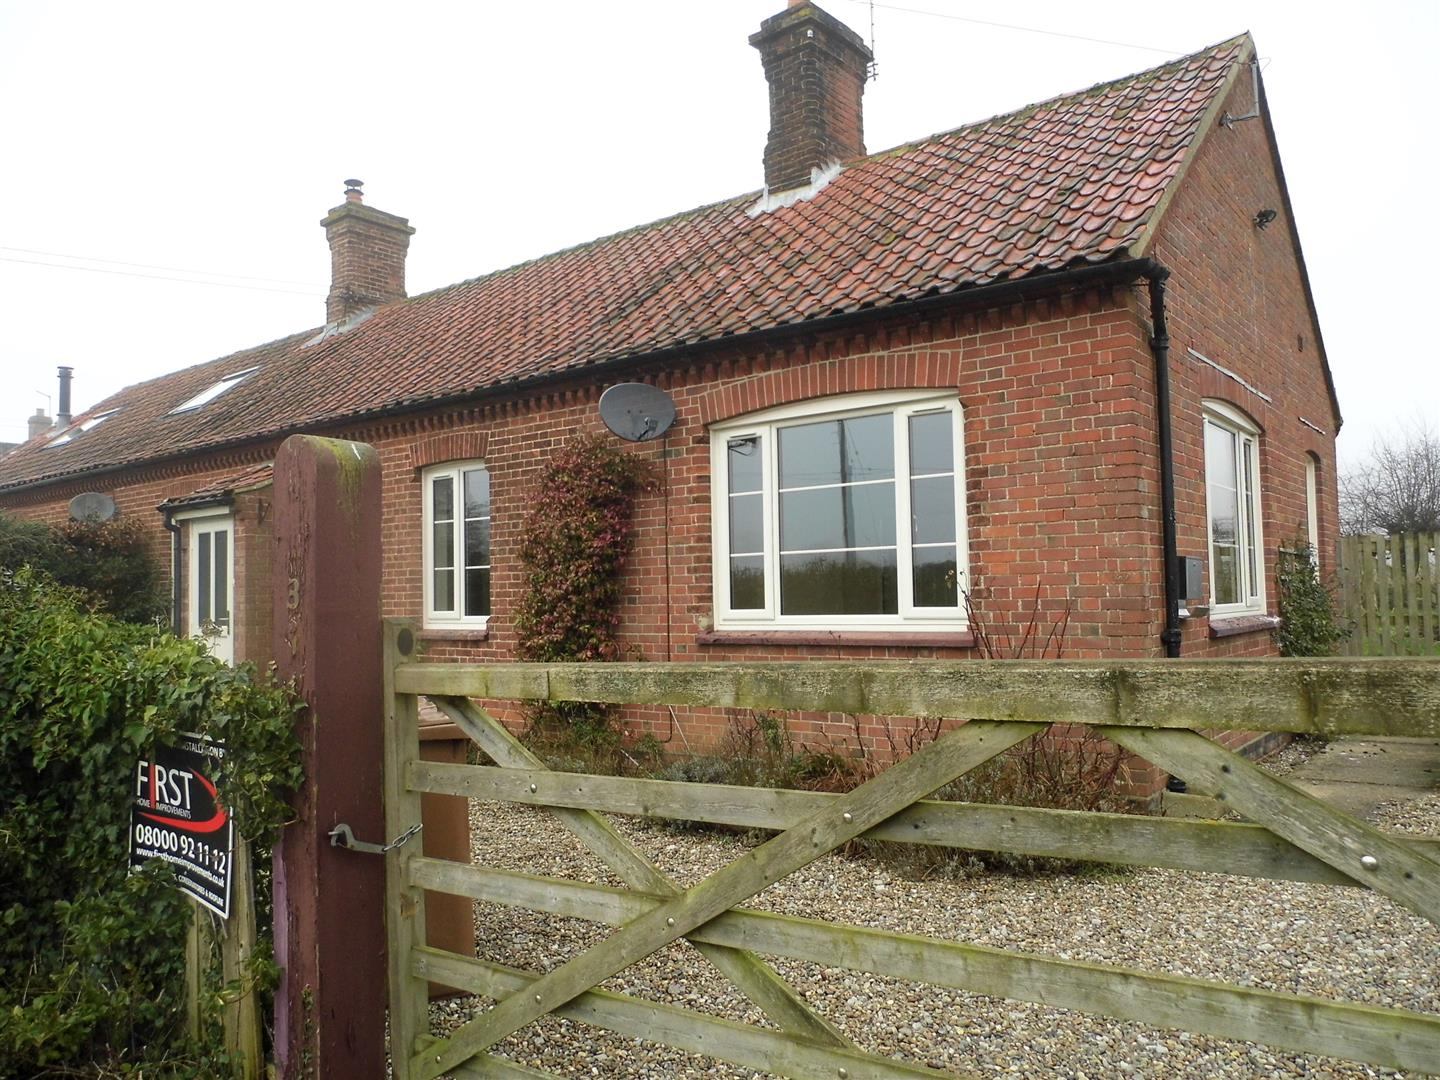 3 bed semi-detached bungalow to rent in Fakenham, NR21 0BQ, NR21